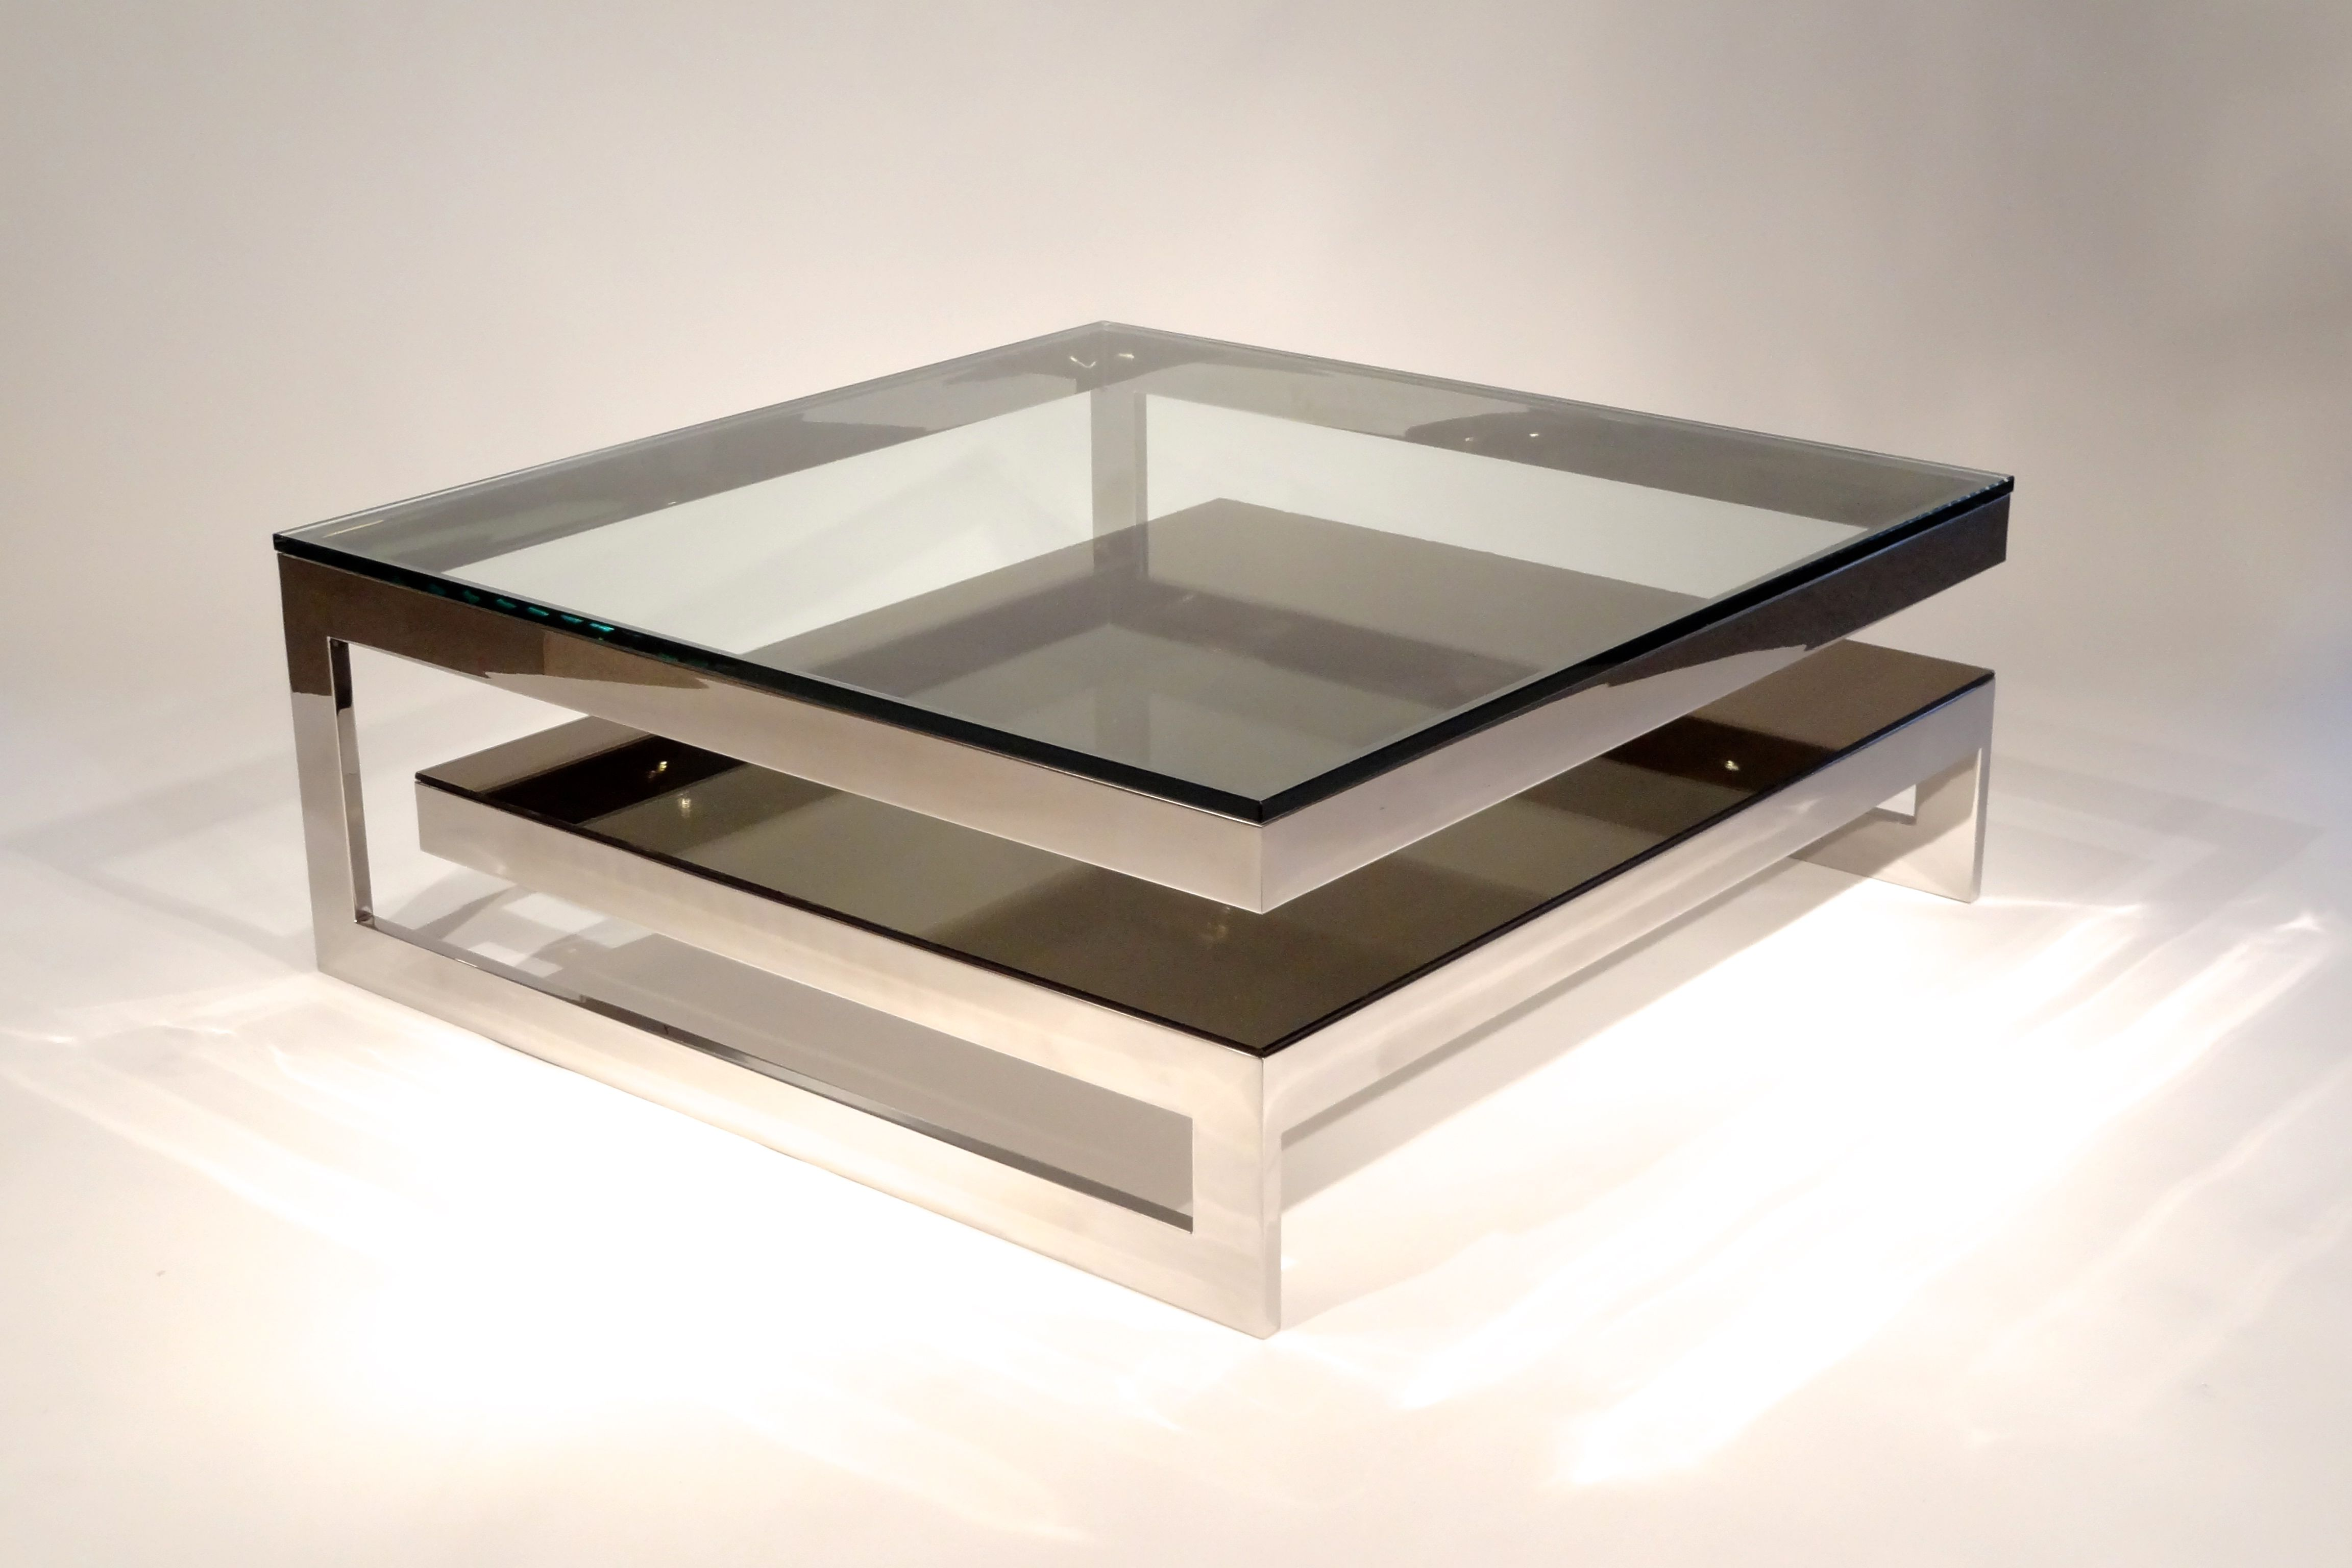 Unique Coffee Table Design For Small Room With Visible Glass Top